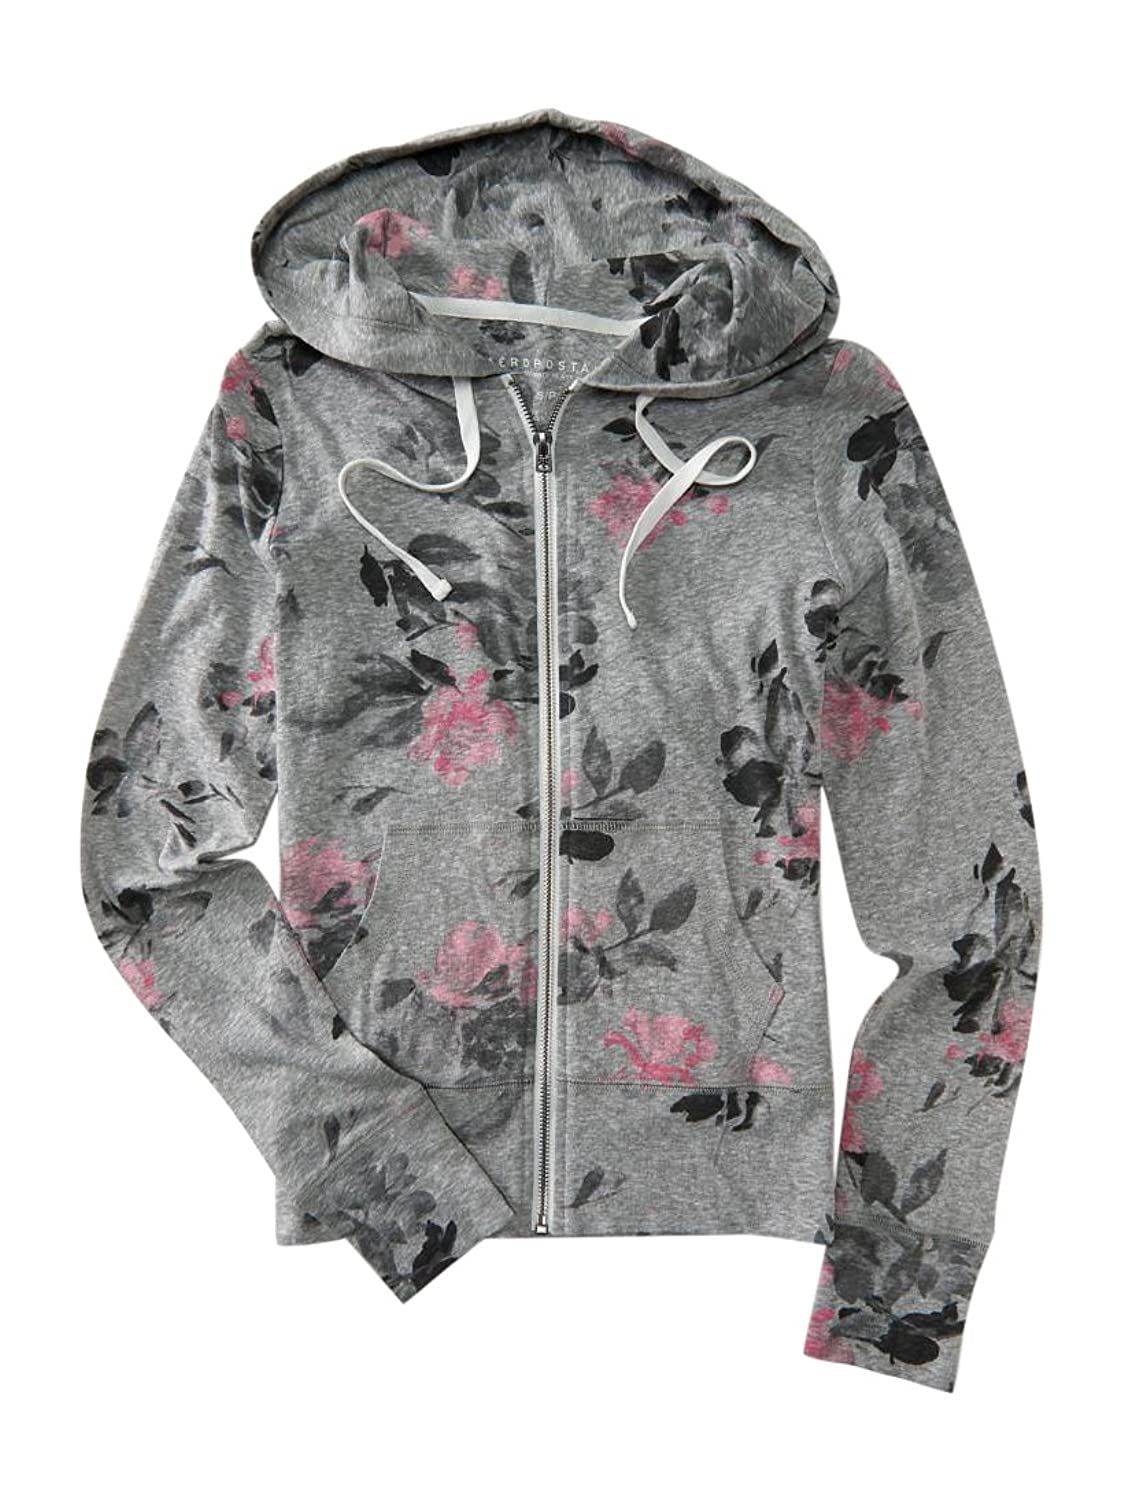 f7a5f2509 chic Aeropostale Women's Prince & Fox Roses Full-Zip Hoodie Gray ...